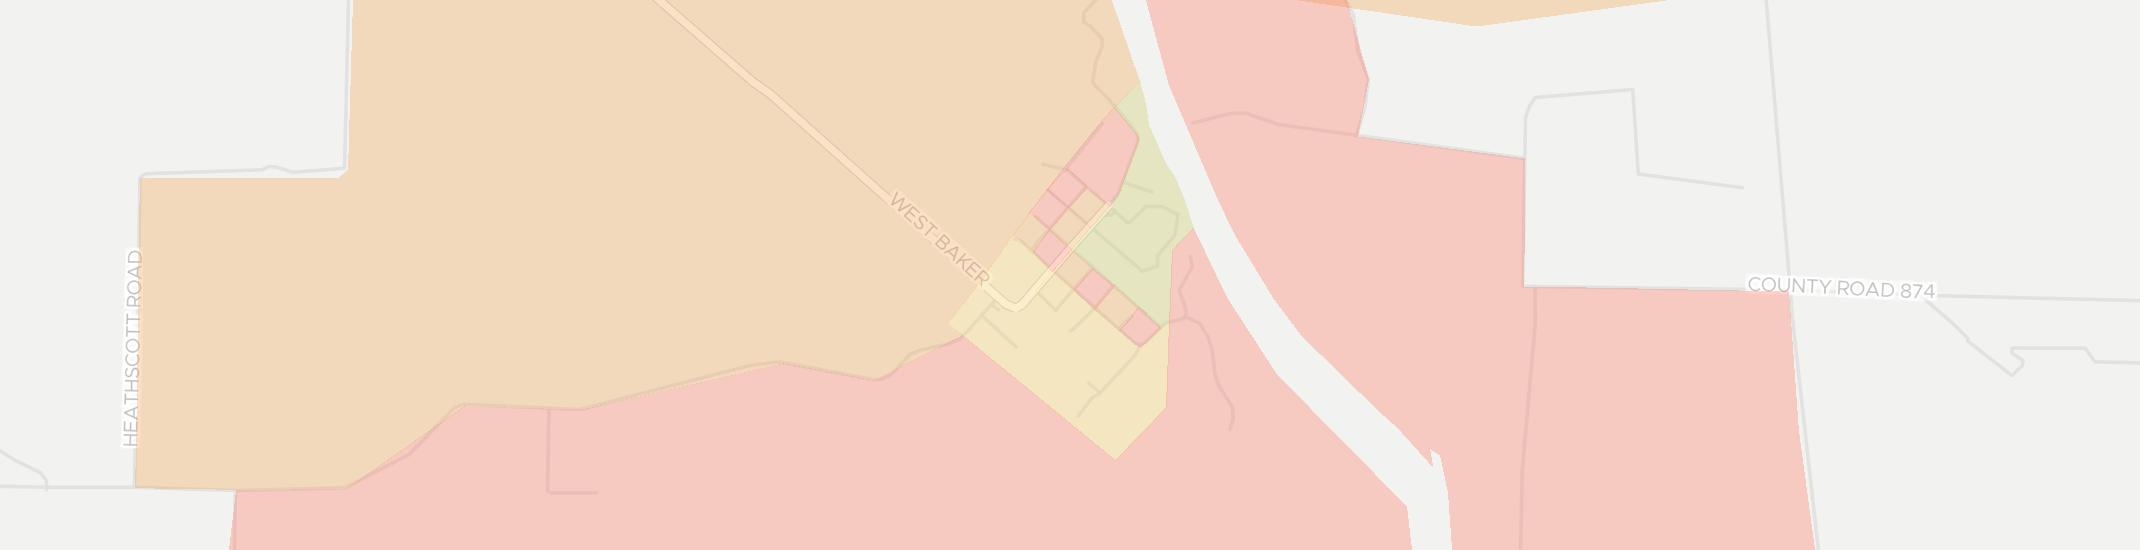 Georgetown Internet Competition Map. Click for interactive map.